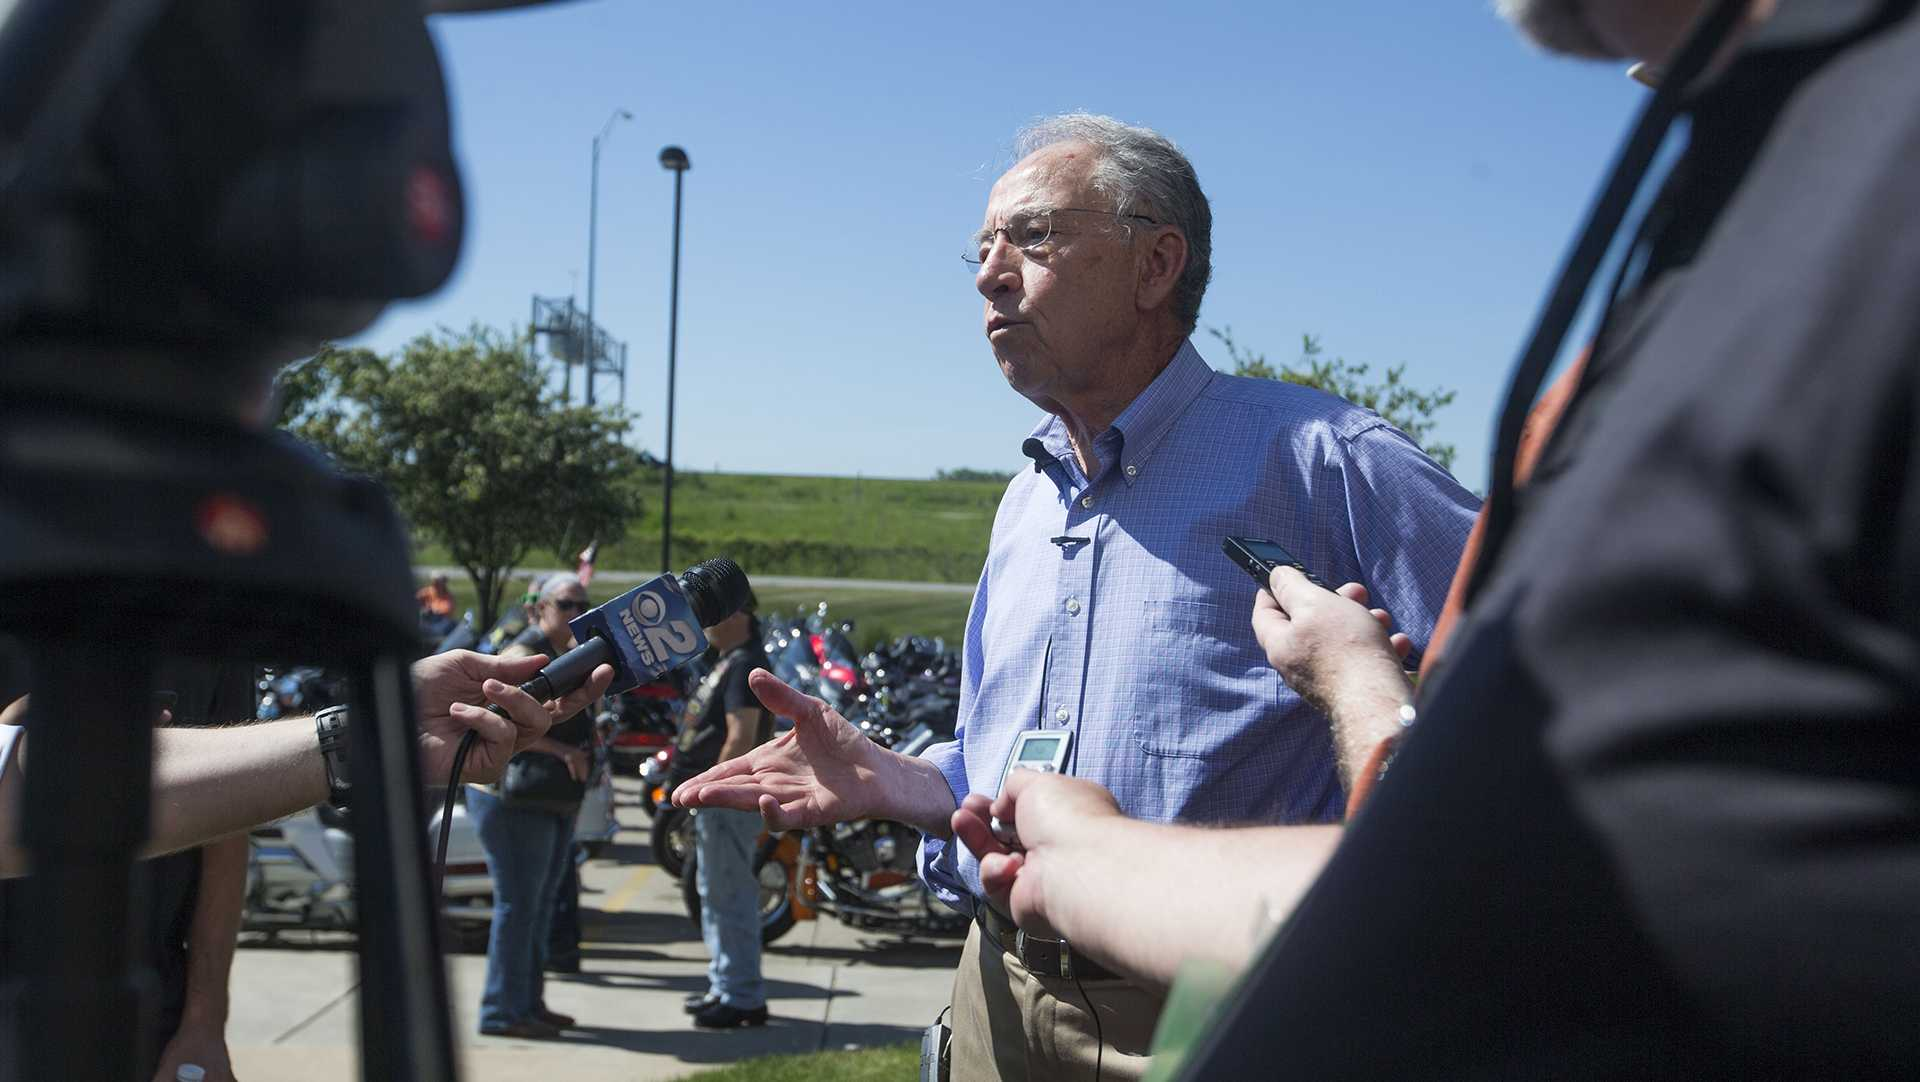 Sen. Chuck Grassley, R-Iowa, speaks with members of the media during the third annual Joni Ernst Roast and Ride fundraiser event at Big Barn Harley Davidson in Des Moines on Saturday, June, 3, 2017. (Joseph Cress/The Daily Iowan)